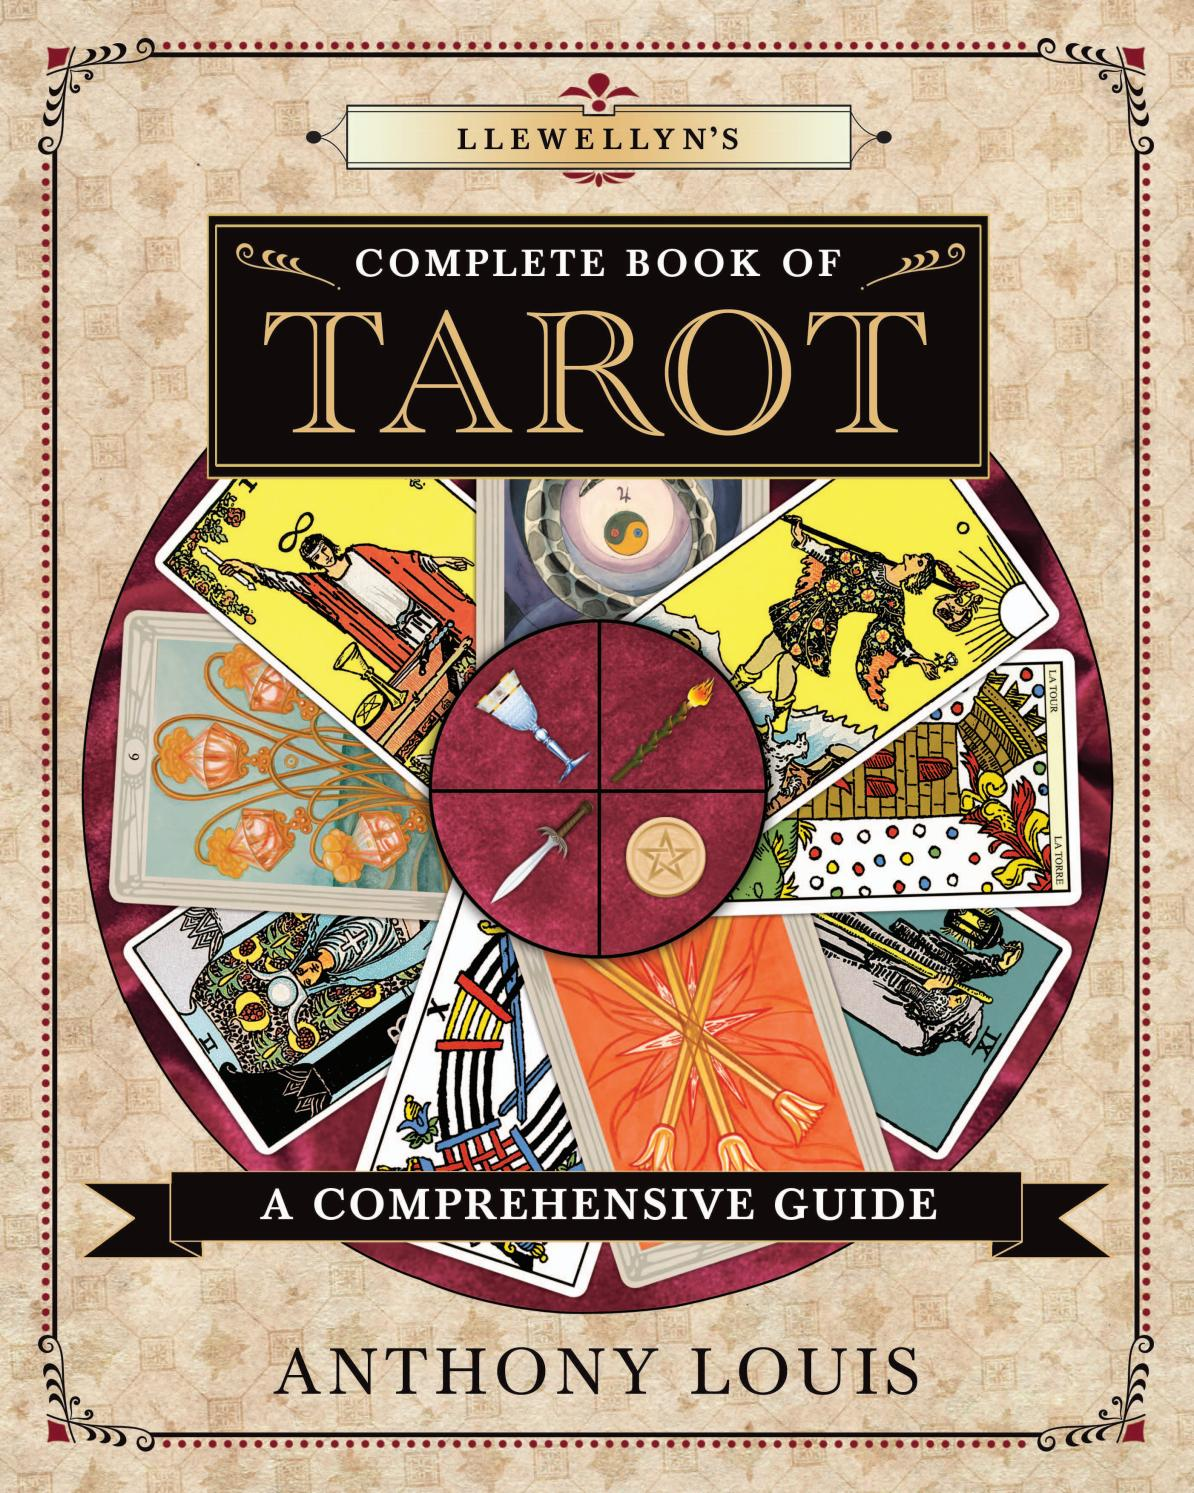 Llewellyn's Complete Book Of Tarot, By Anthony Louis By